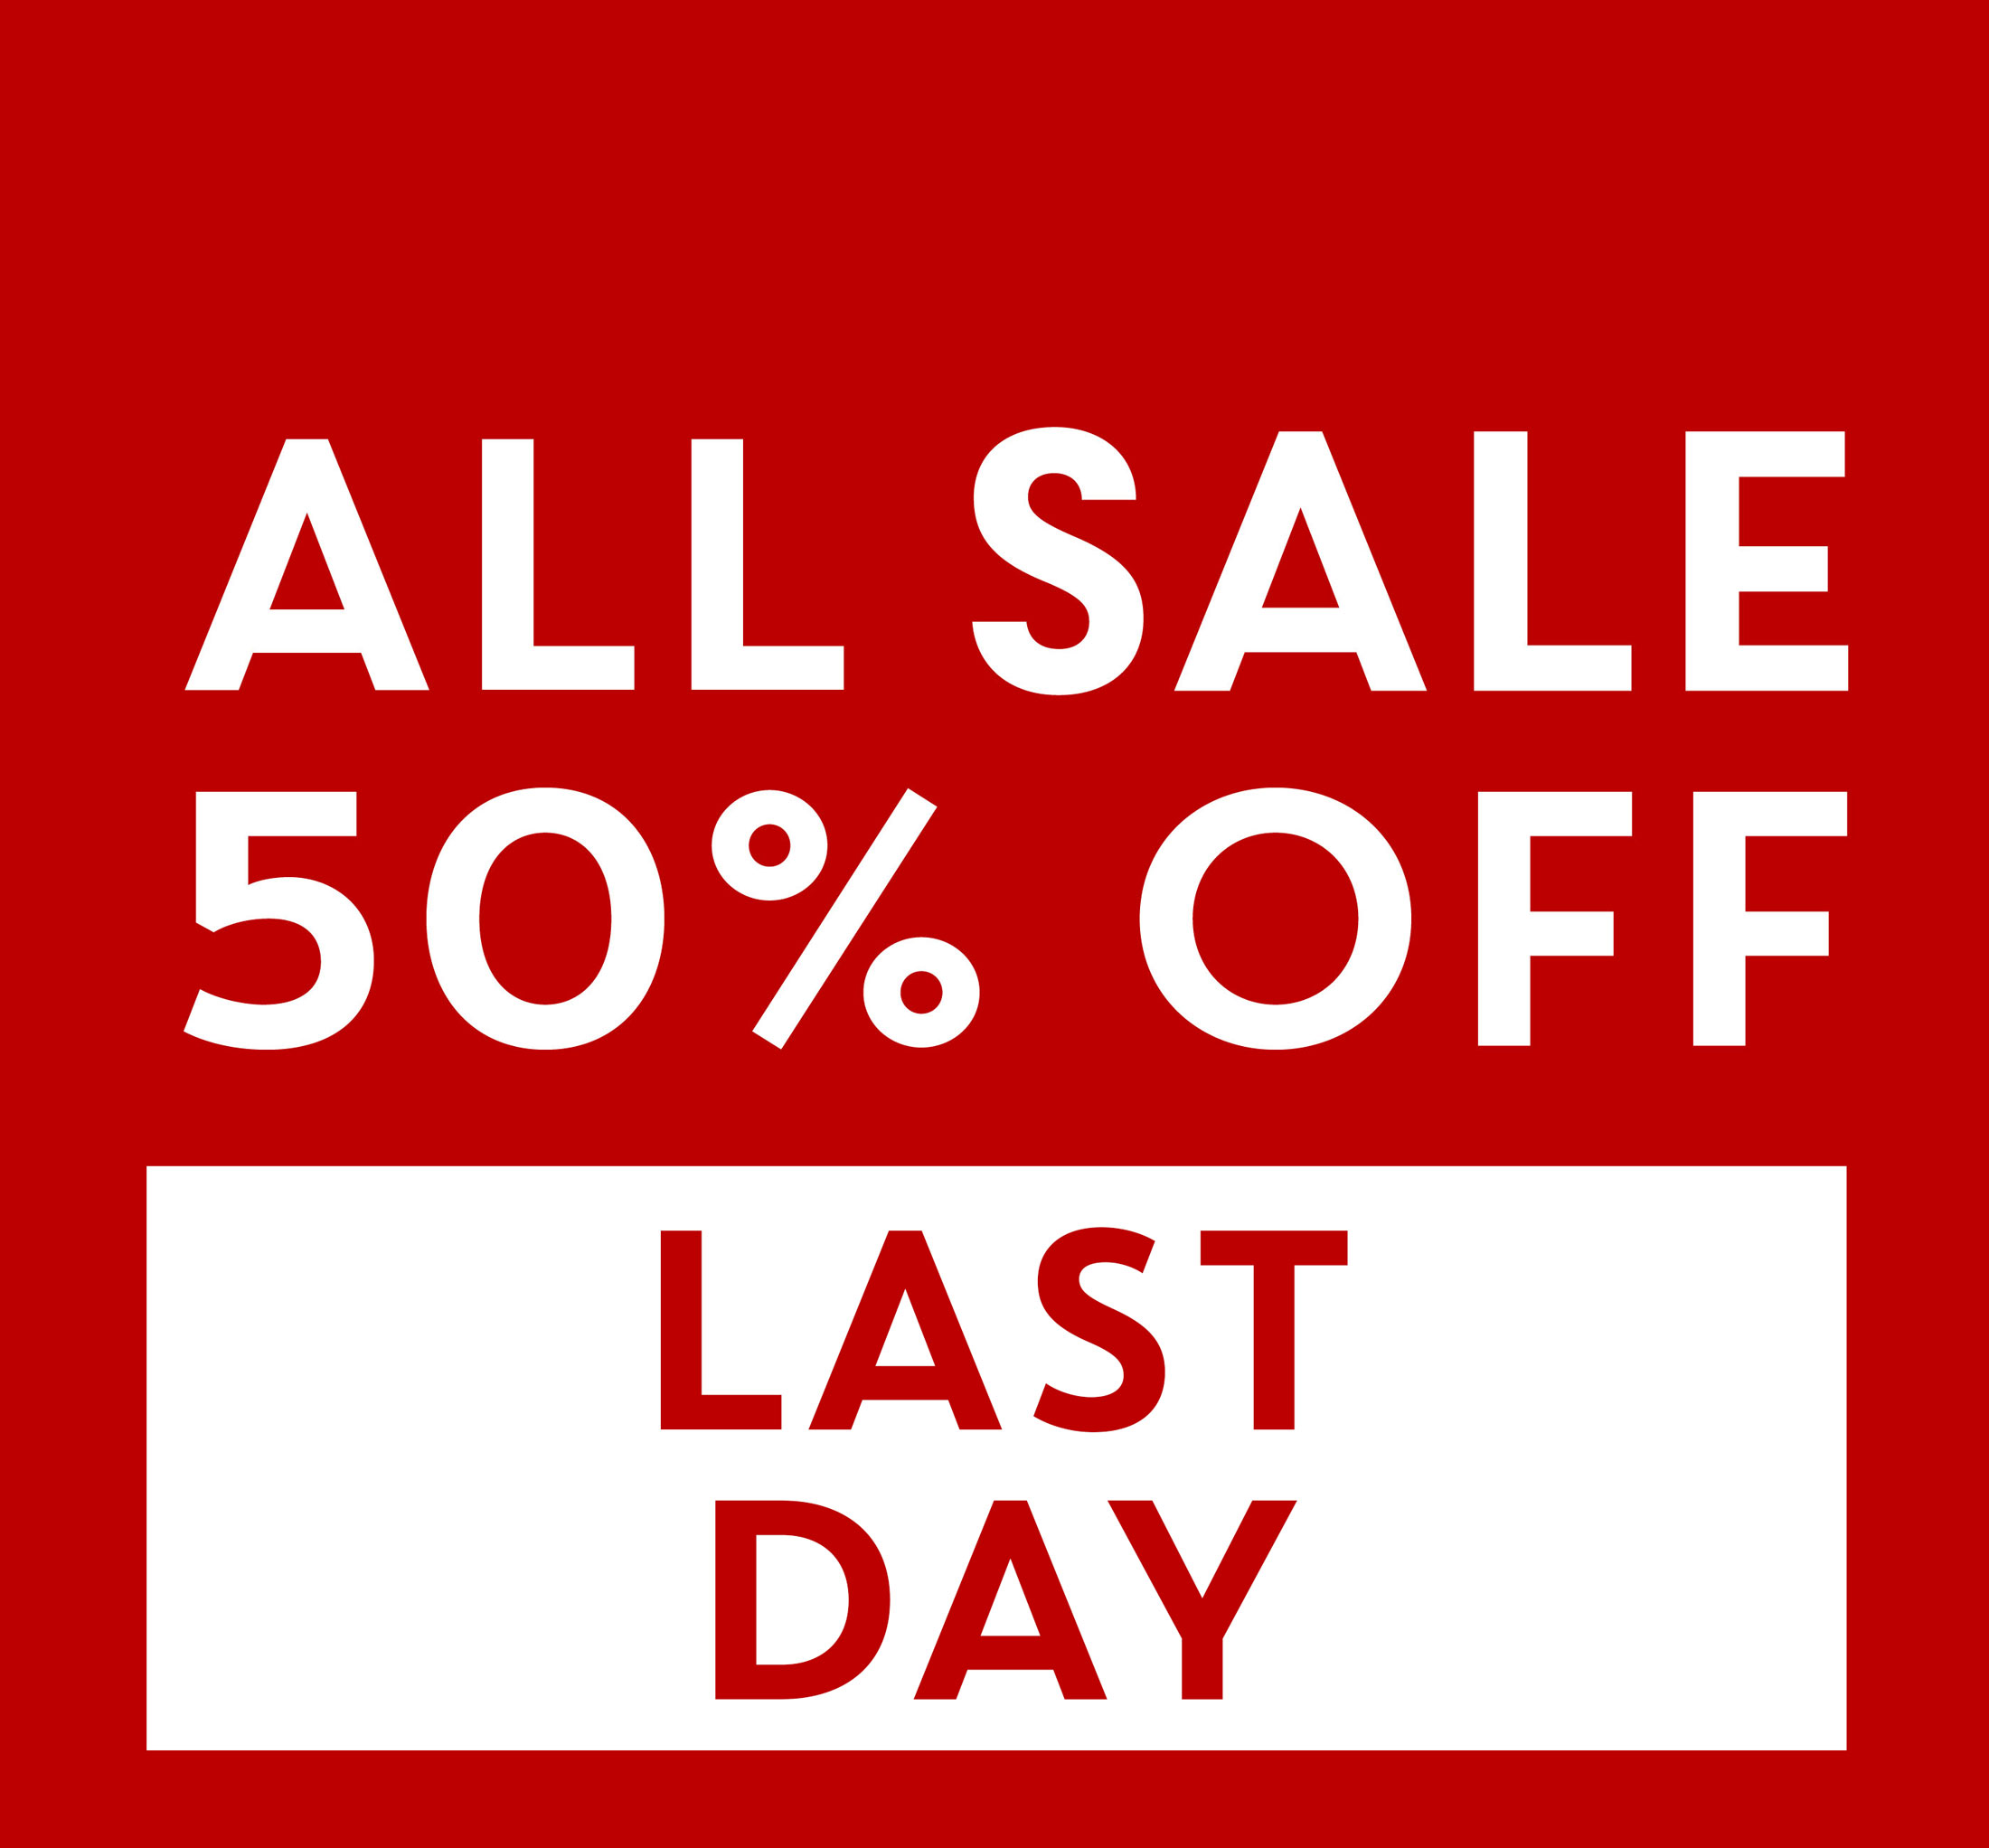 ALL SALE 50% OFF